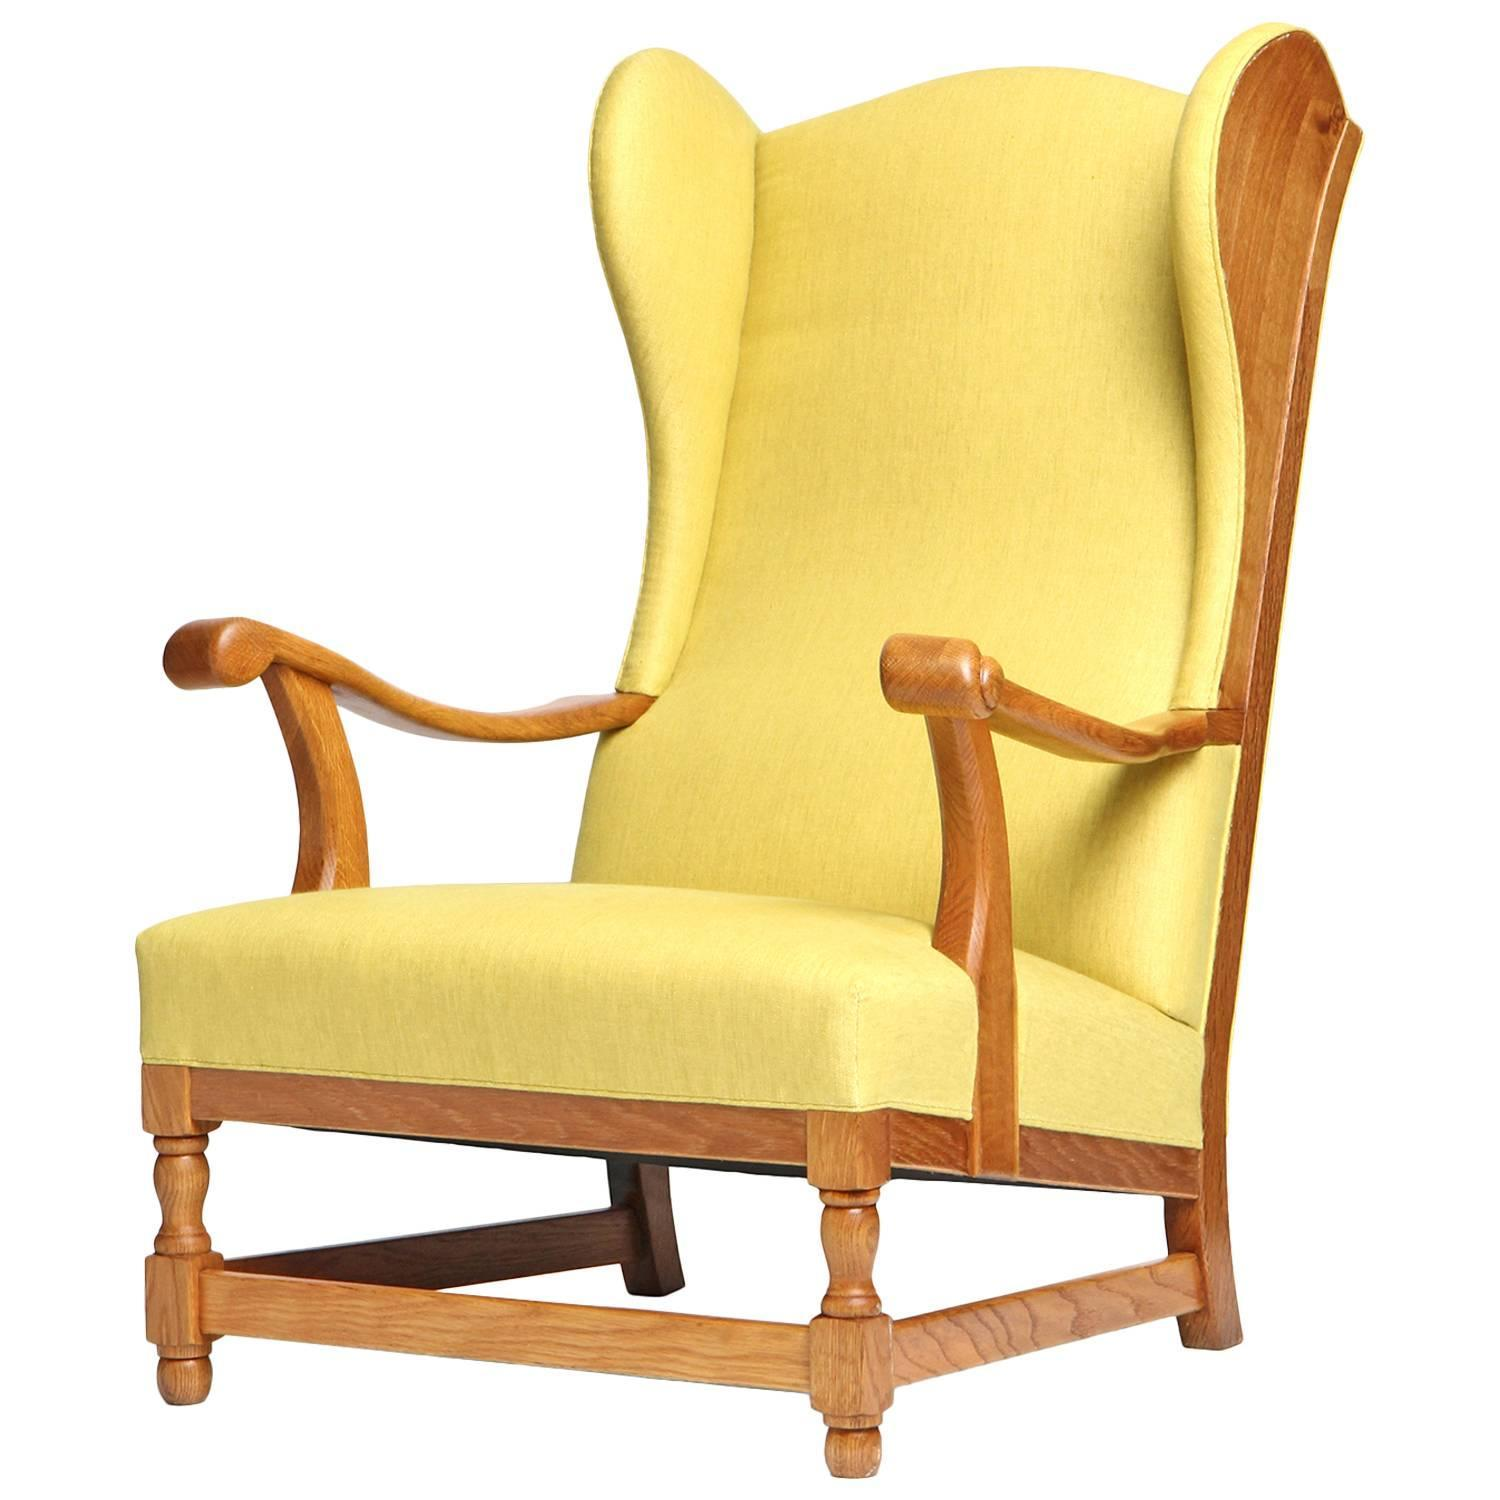 Scandanivian Wingback Chair For Sale at 1stdibs